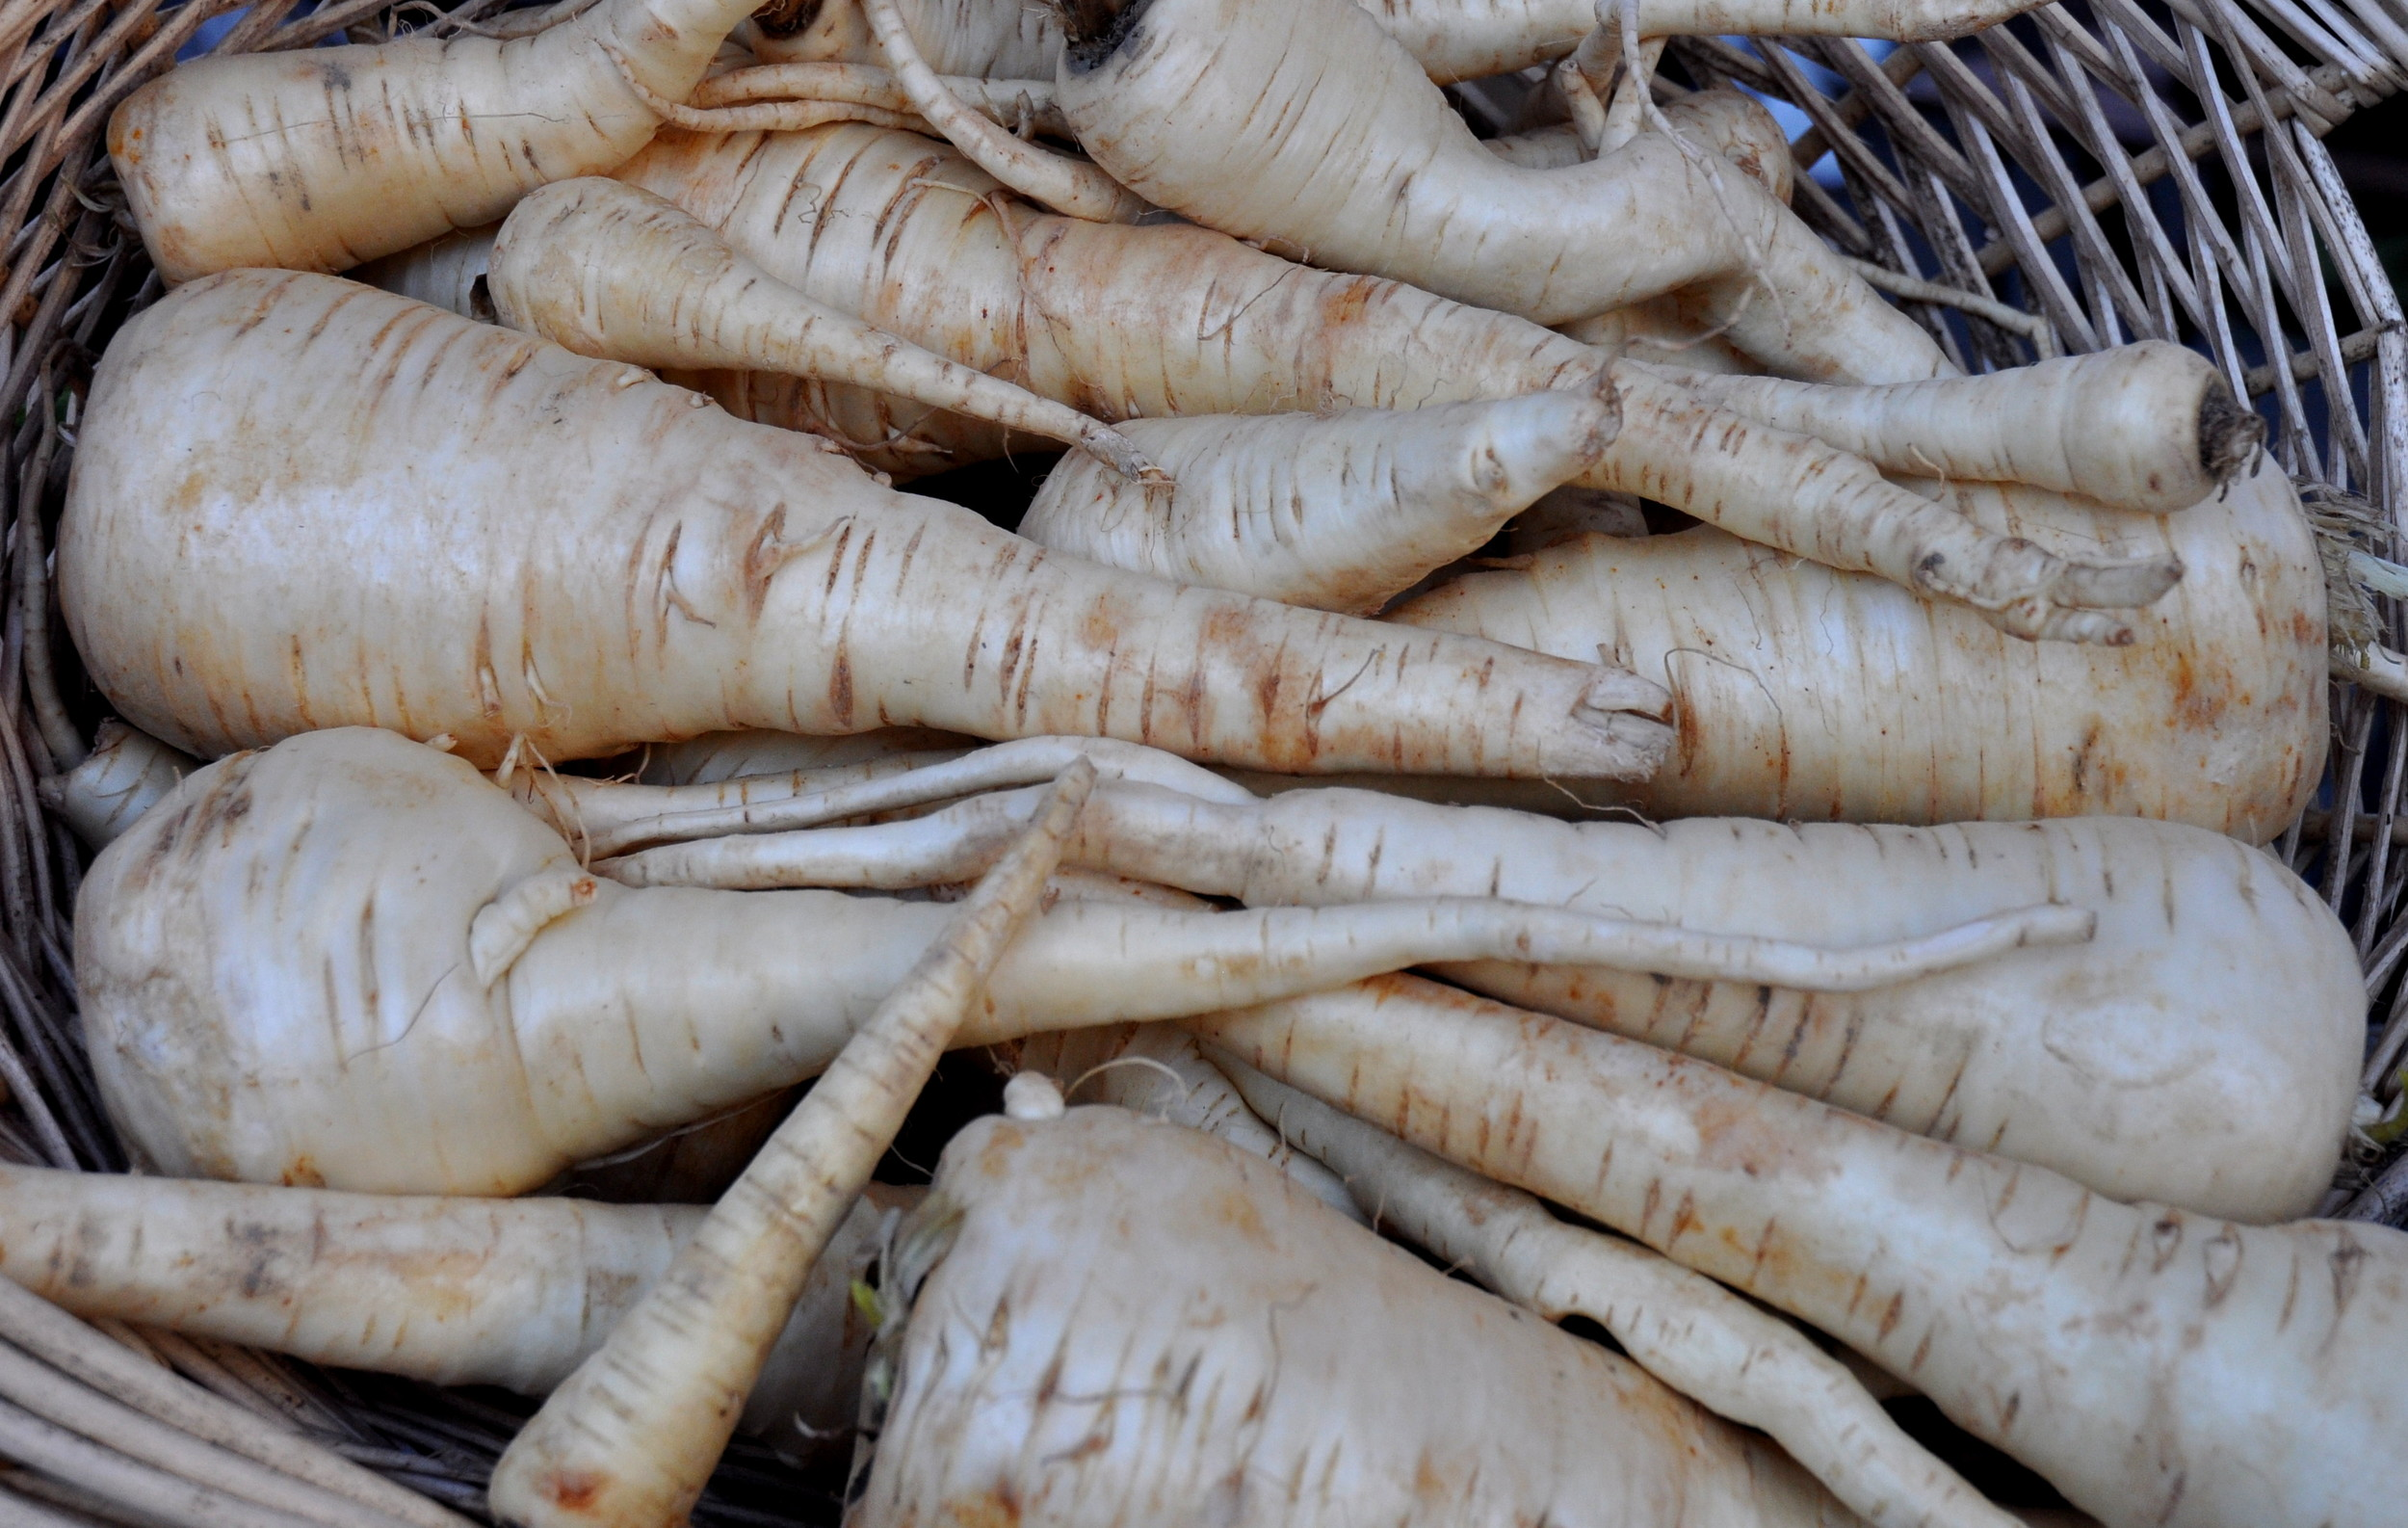 Parsnips from Oxbow Farm at Ballard Farmers Market. Copyright Zachary D. Lyons.